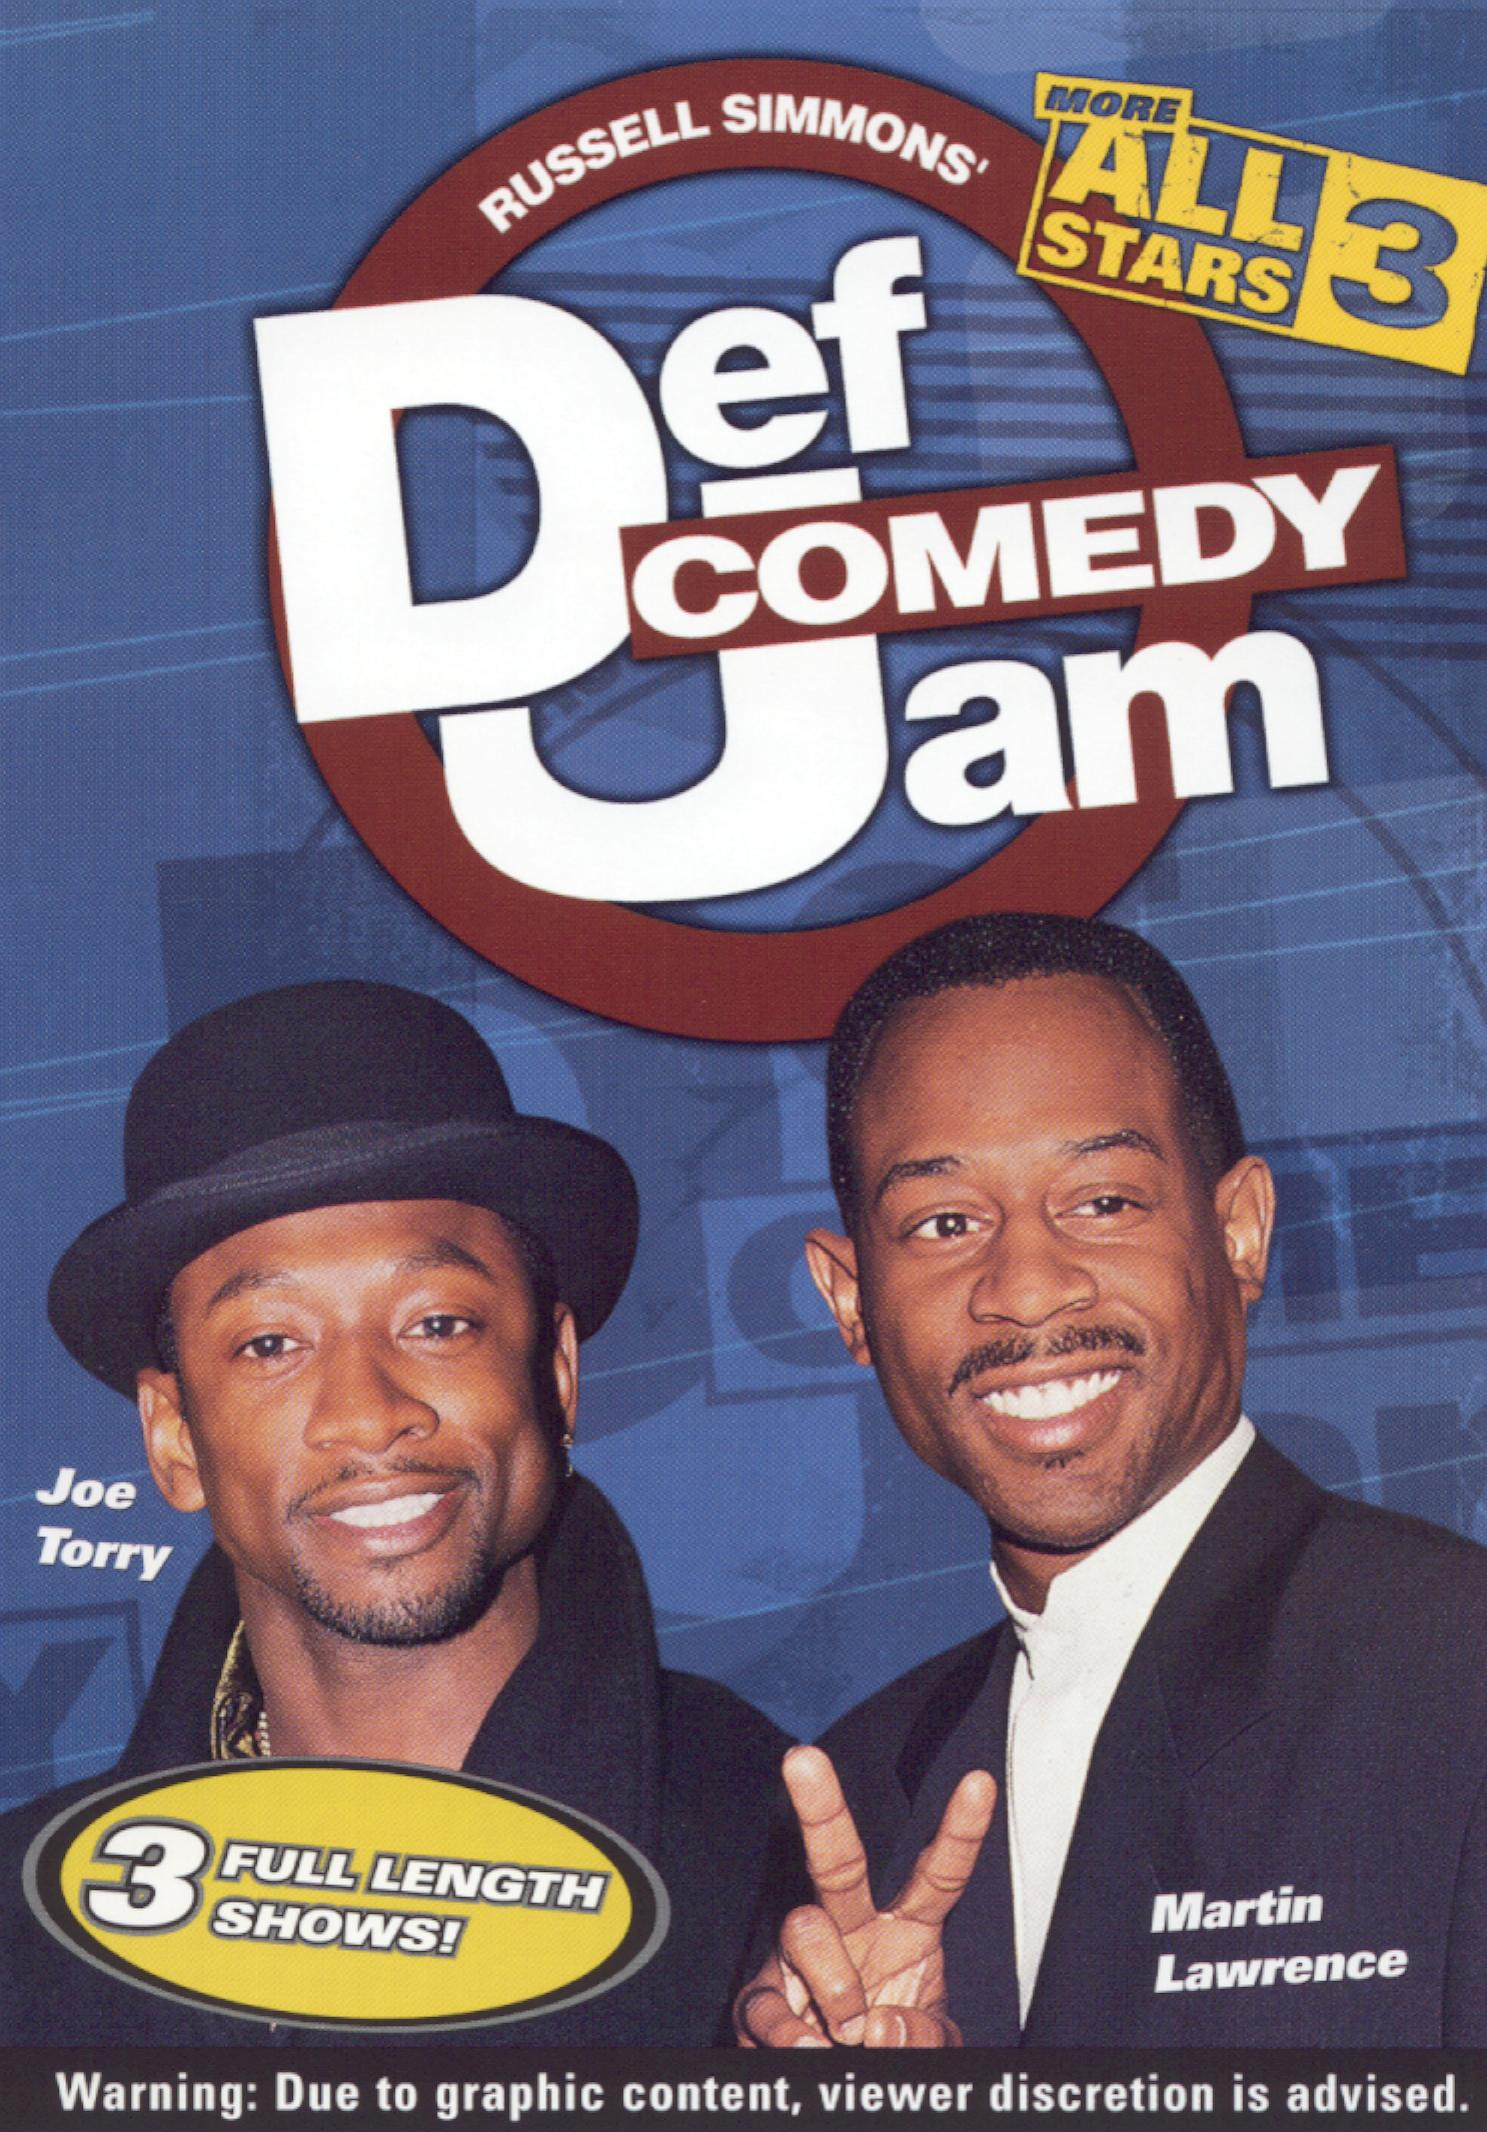 Def Comedy Jam: More All Stars, Vol. 3